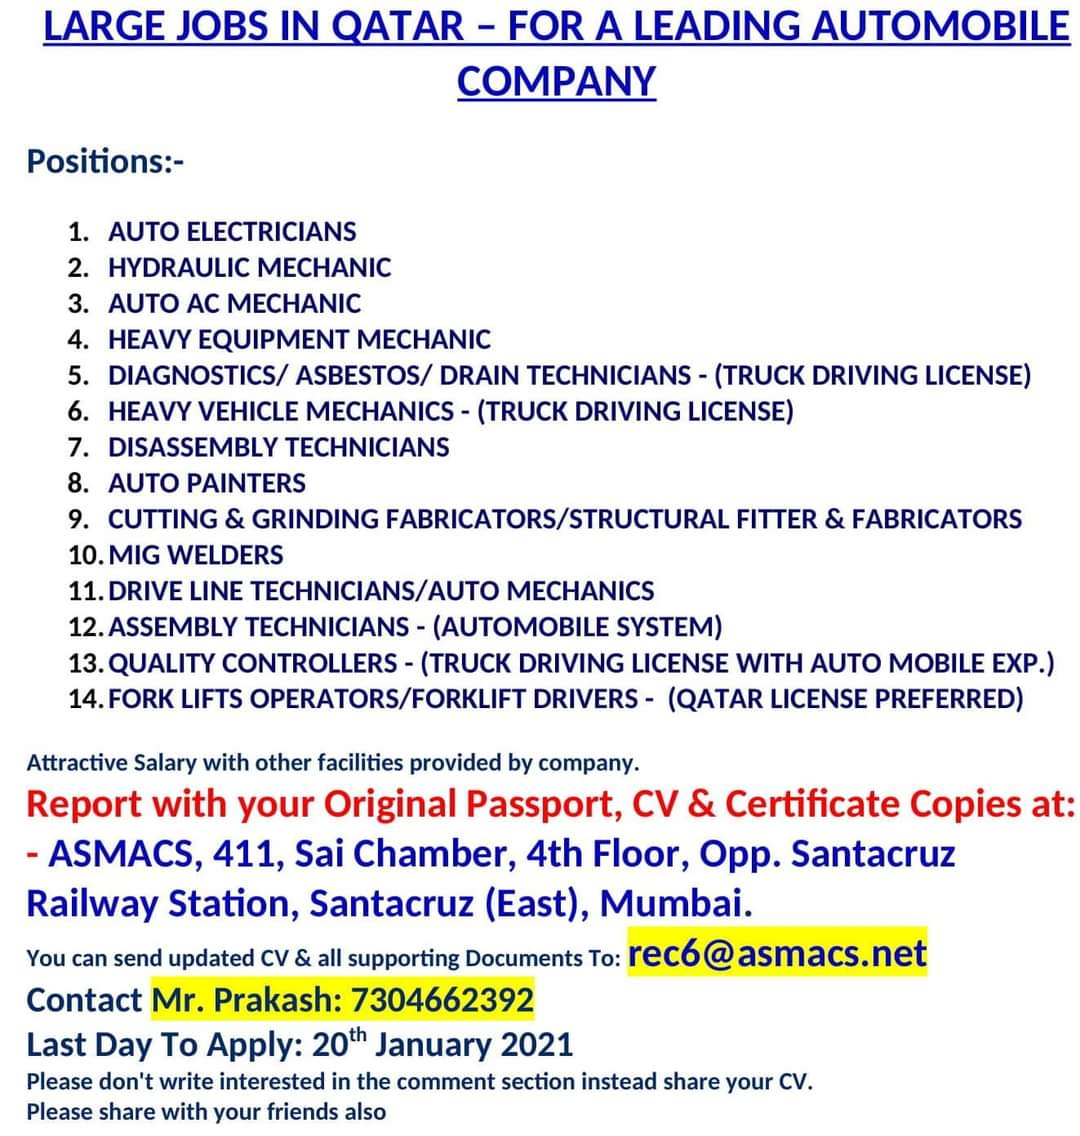 REQUIREMENT FOR A LEADING AUTOMOBILE COMPANY IN QATAR